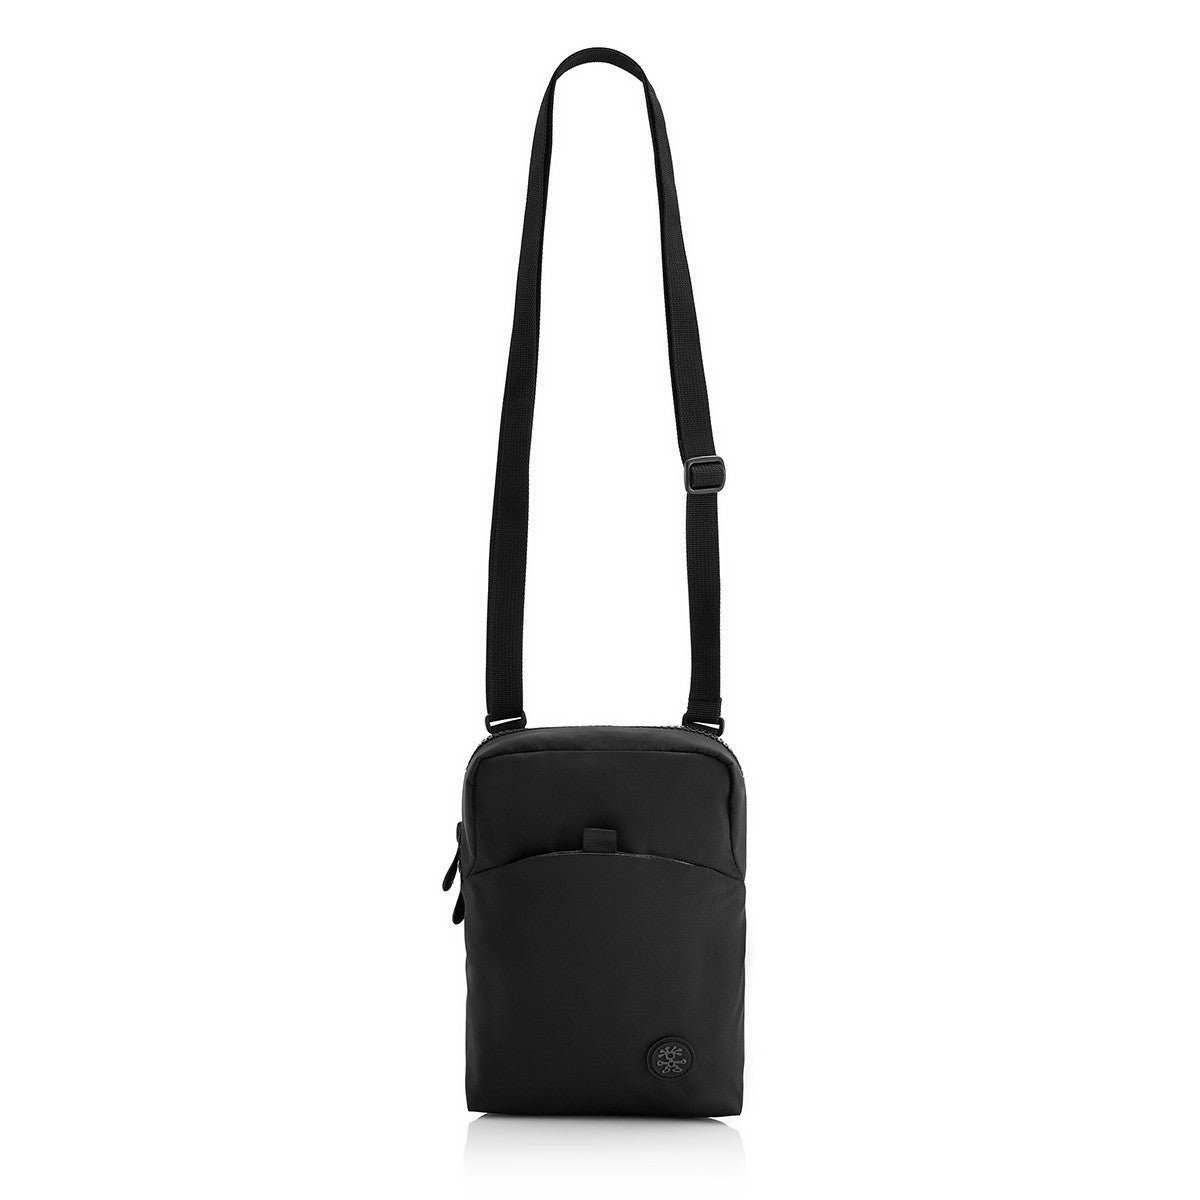 Crumpler: Mini Milonas Accessories Bag - Black